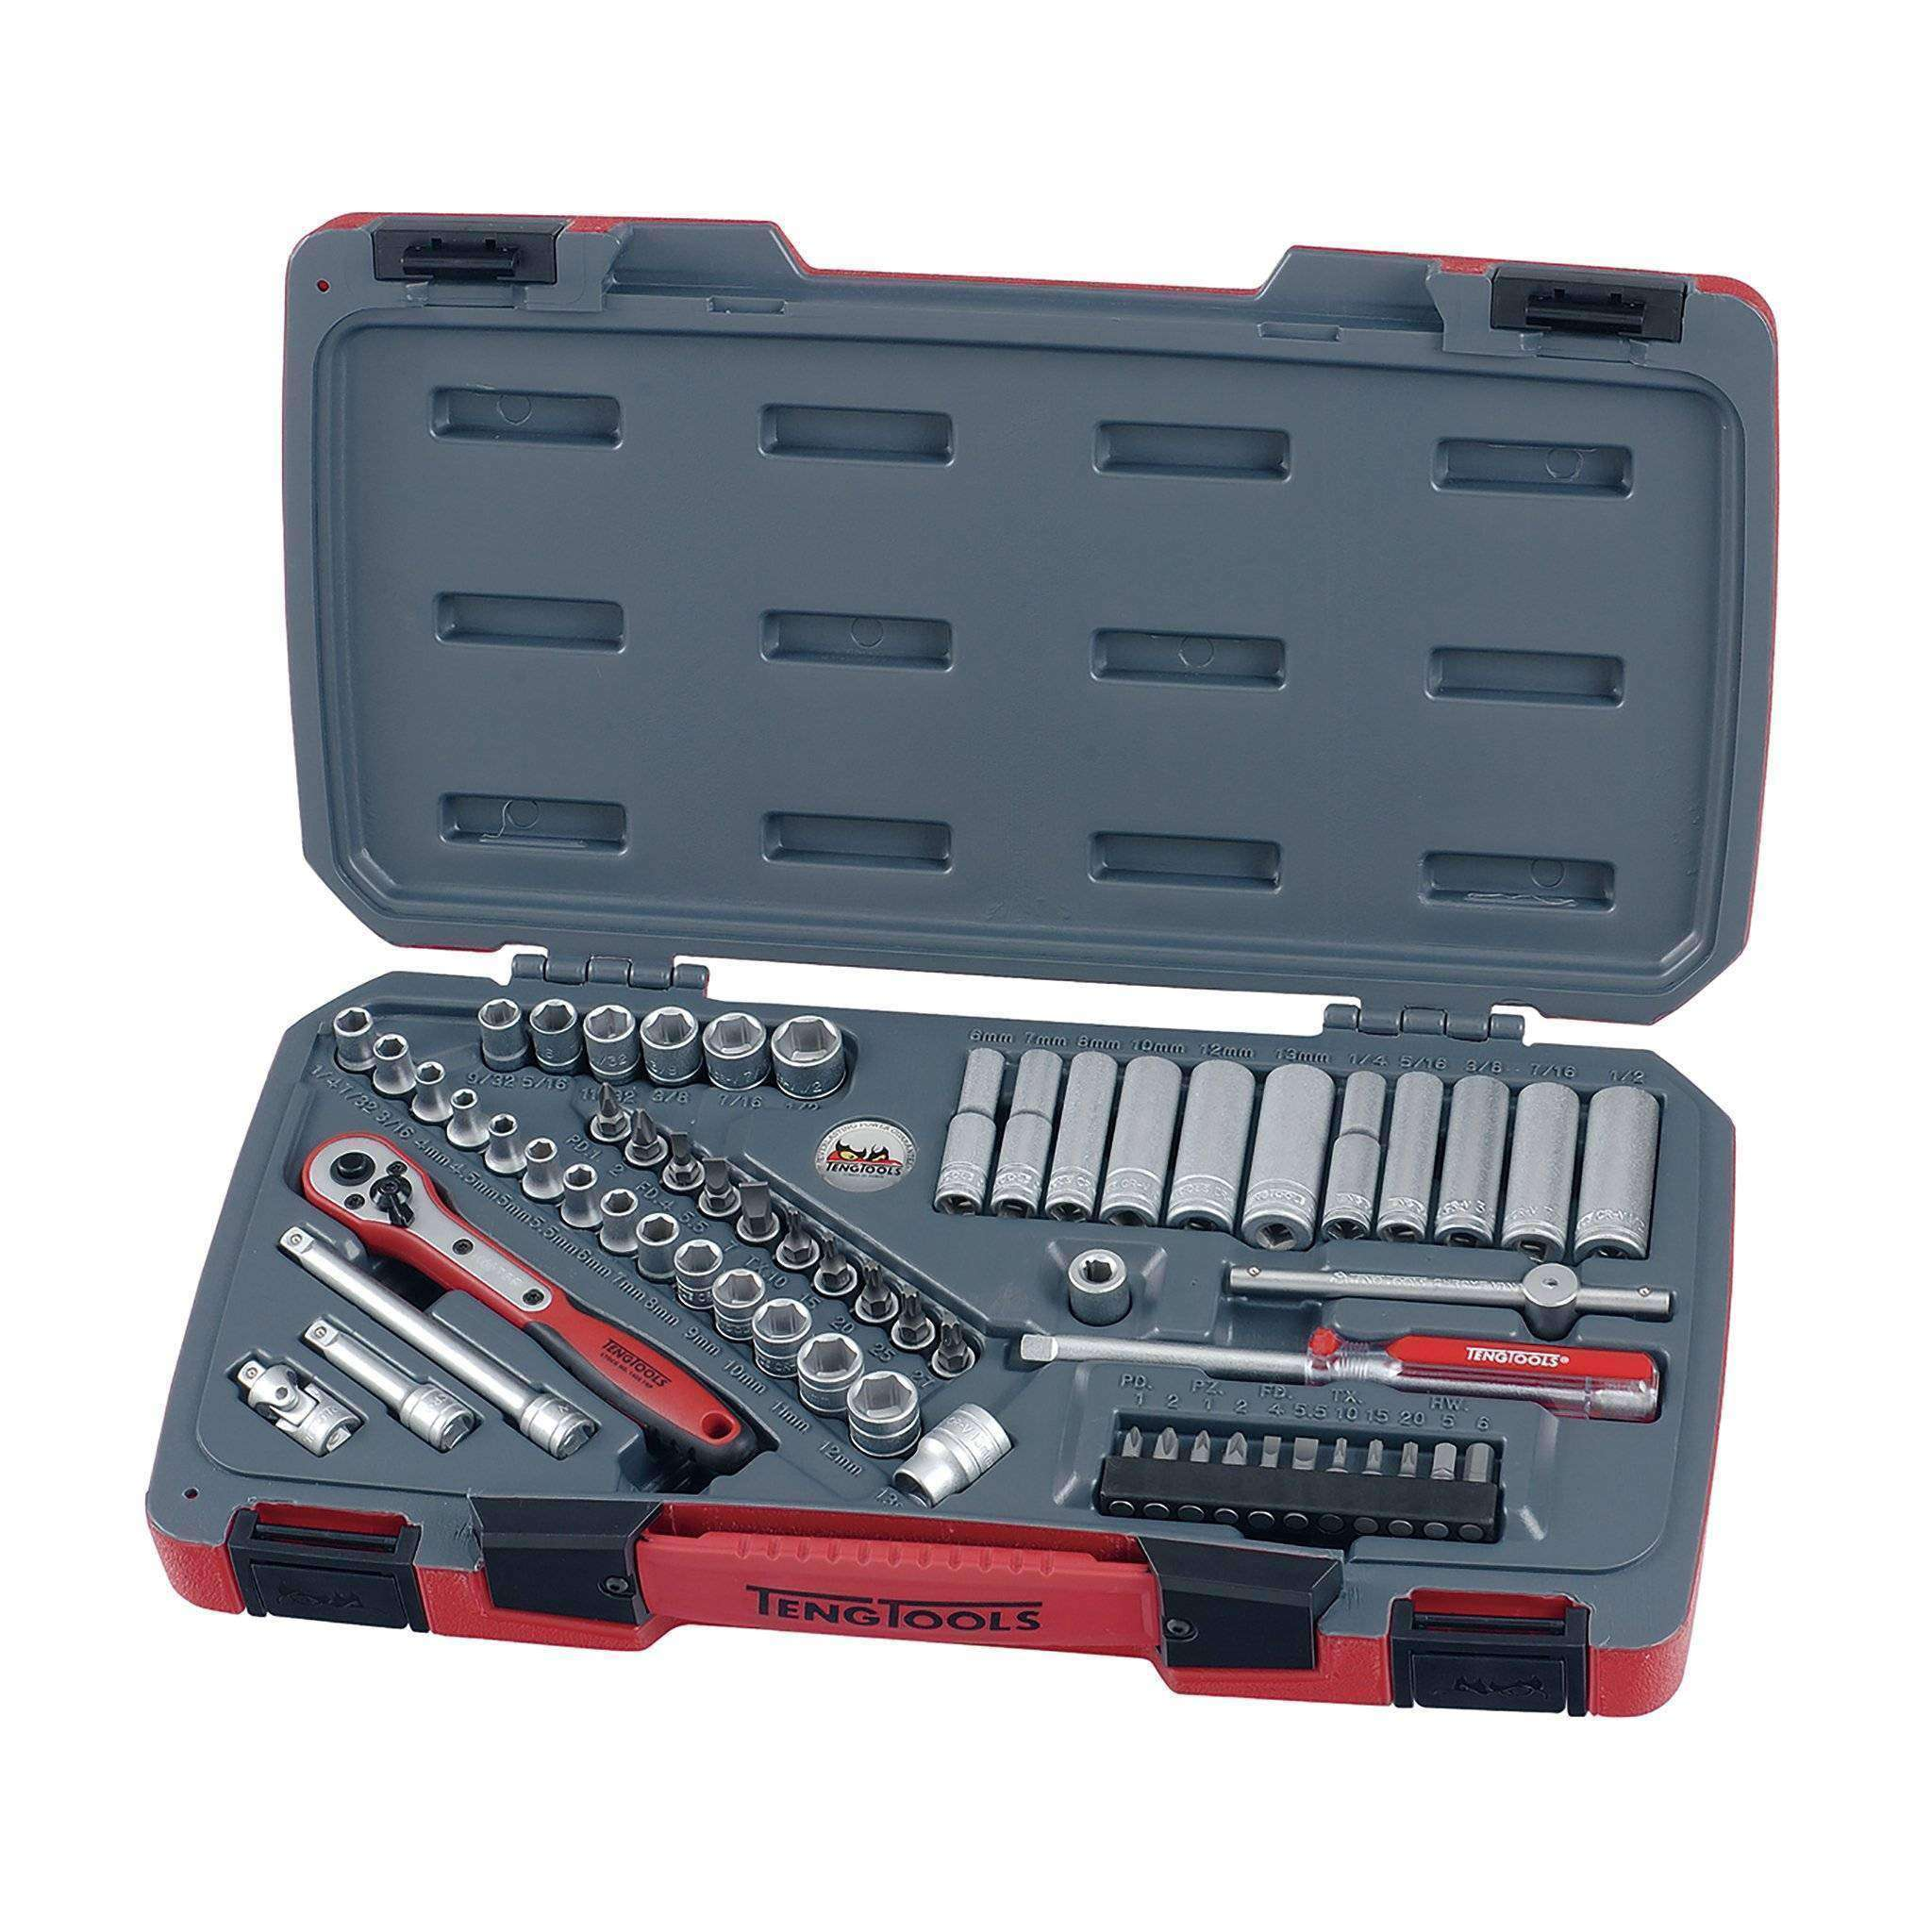 Teng Tools T1460 - 60 Piece 1/4 inch Drive Socket Set - Teng Tools USA